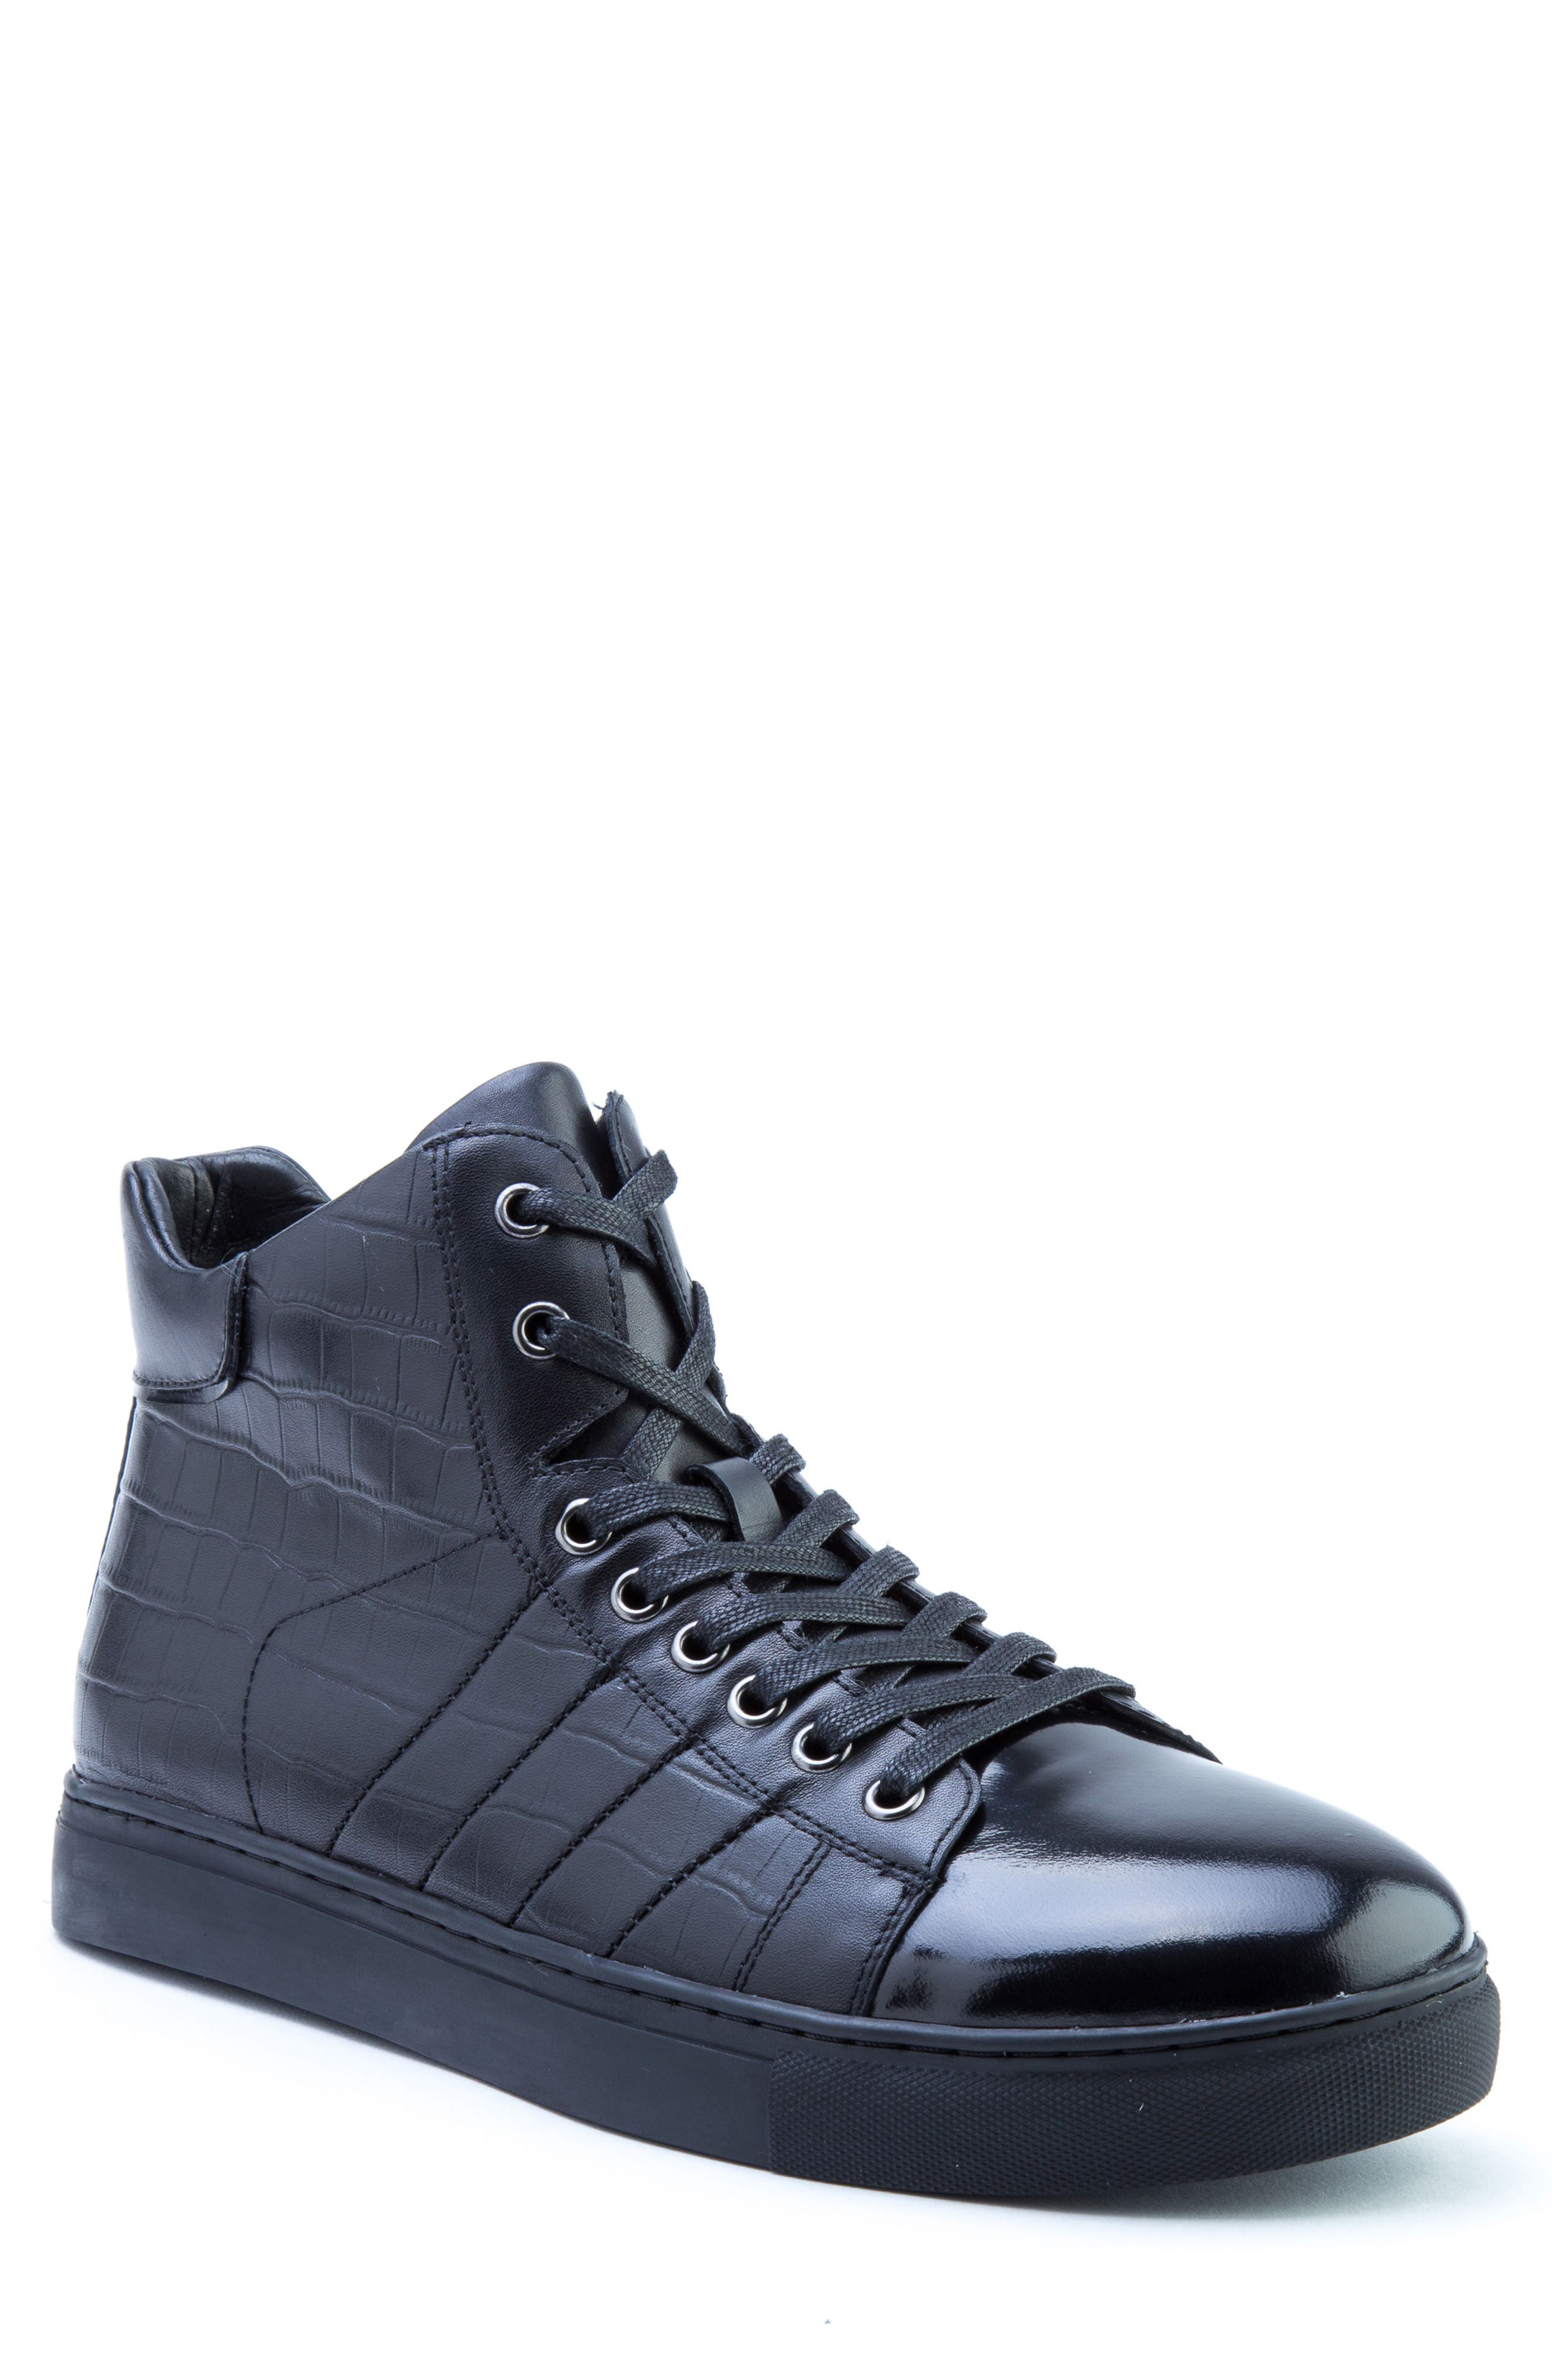 Clift High Top Sneaker,                             Main thumbnail 1, color,                             001